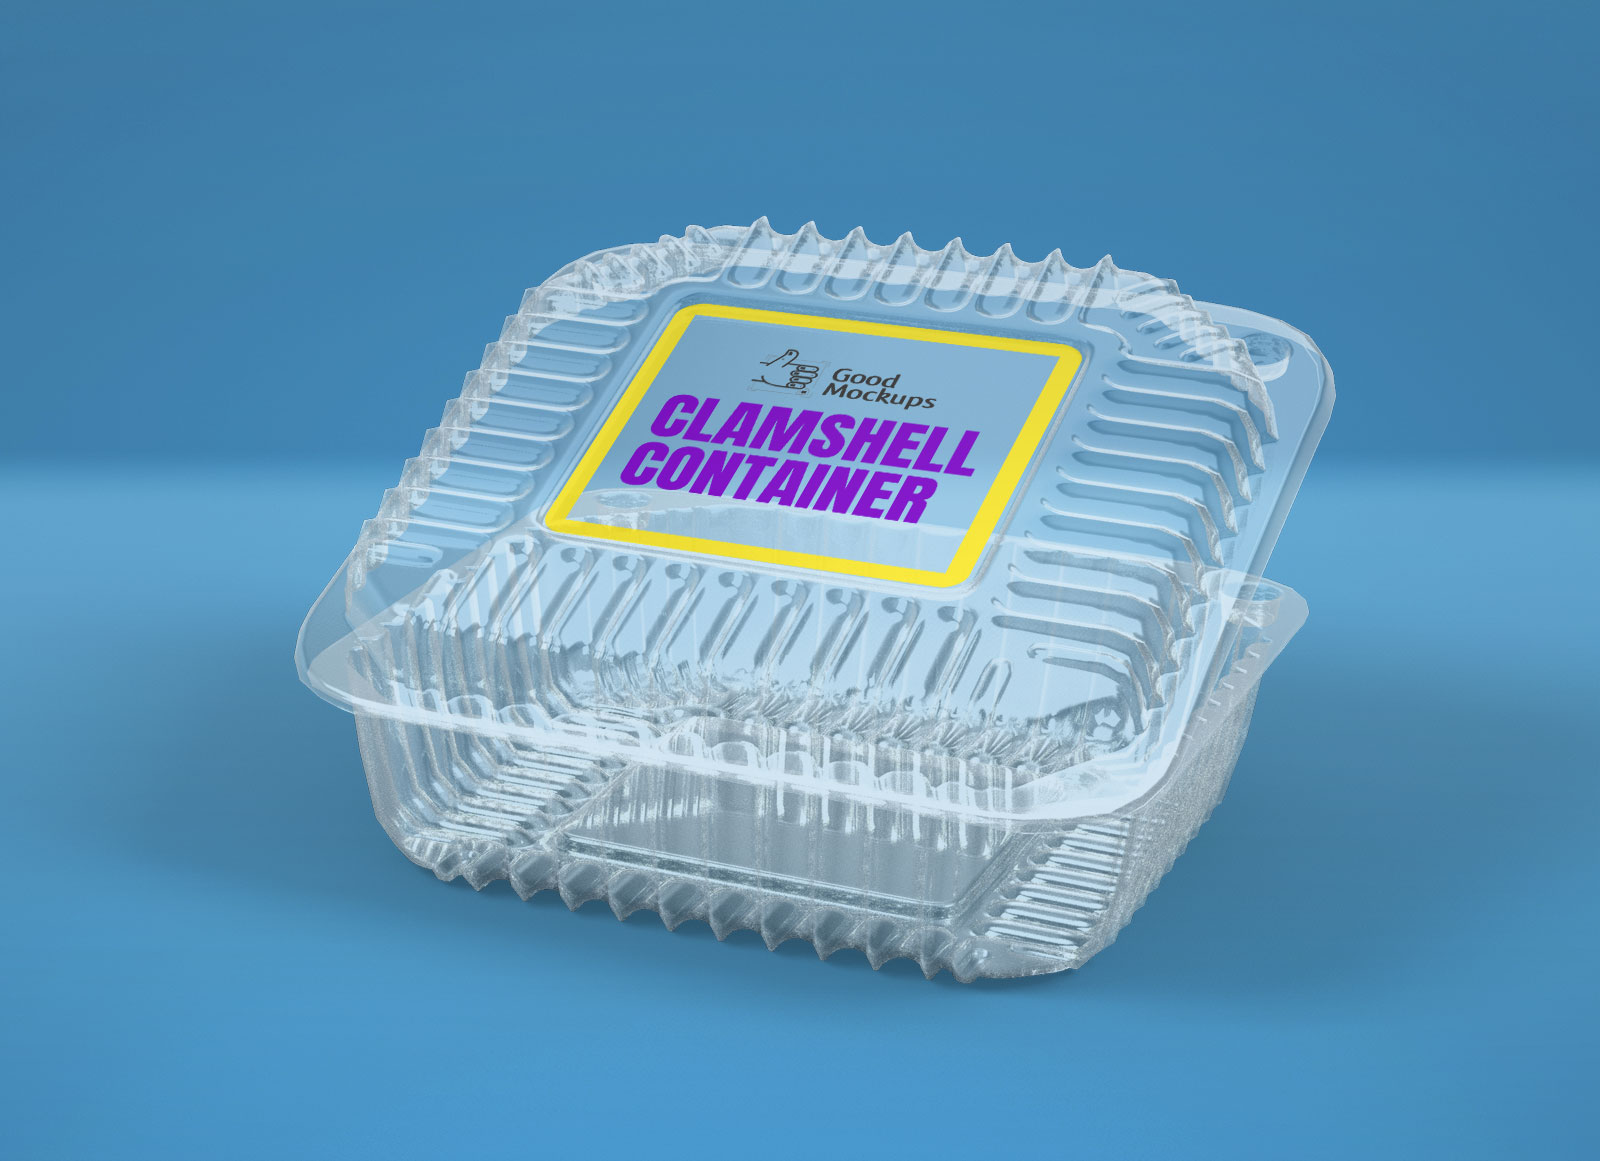 Free-Transparent-Disposable-Clamshell-Container-Packaging-Mockup-PSD